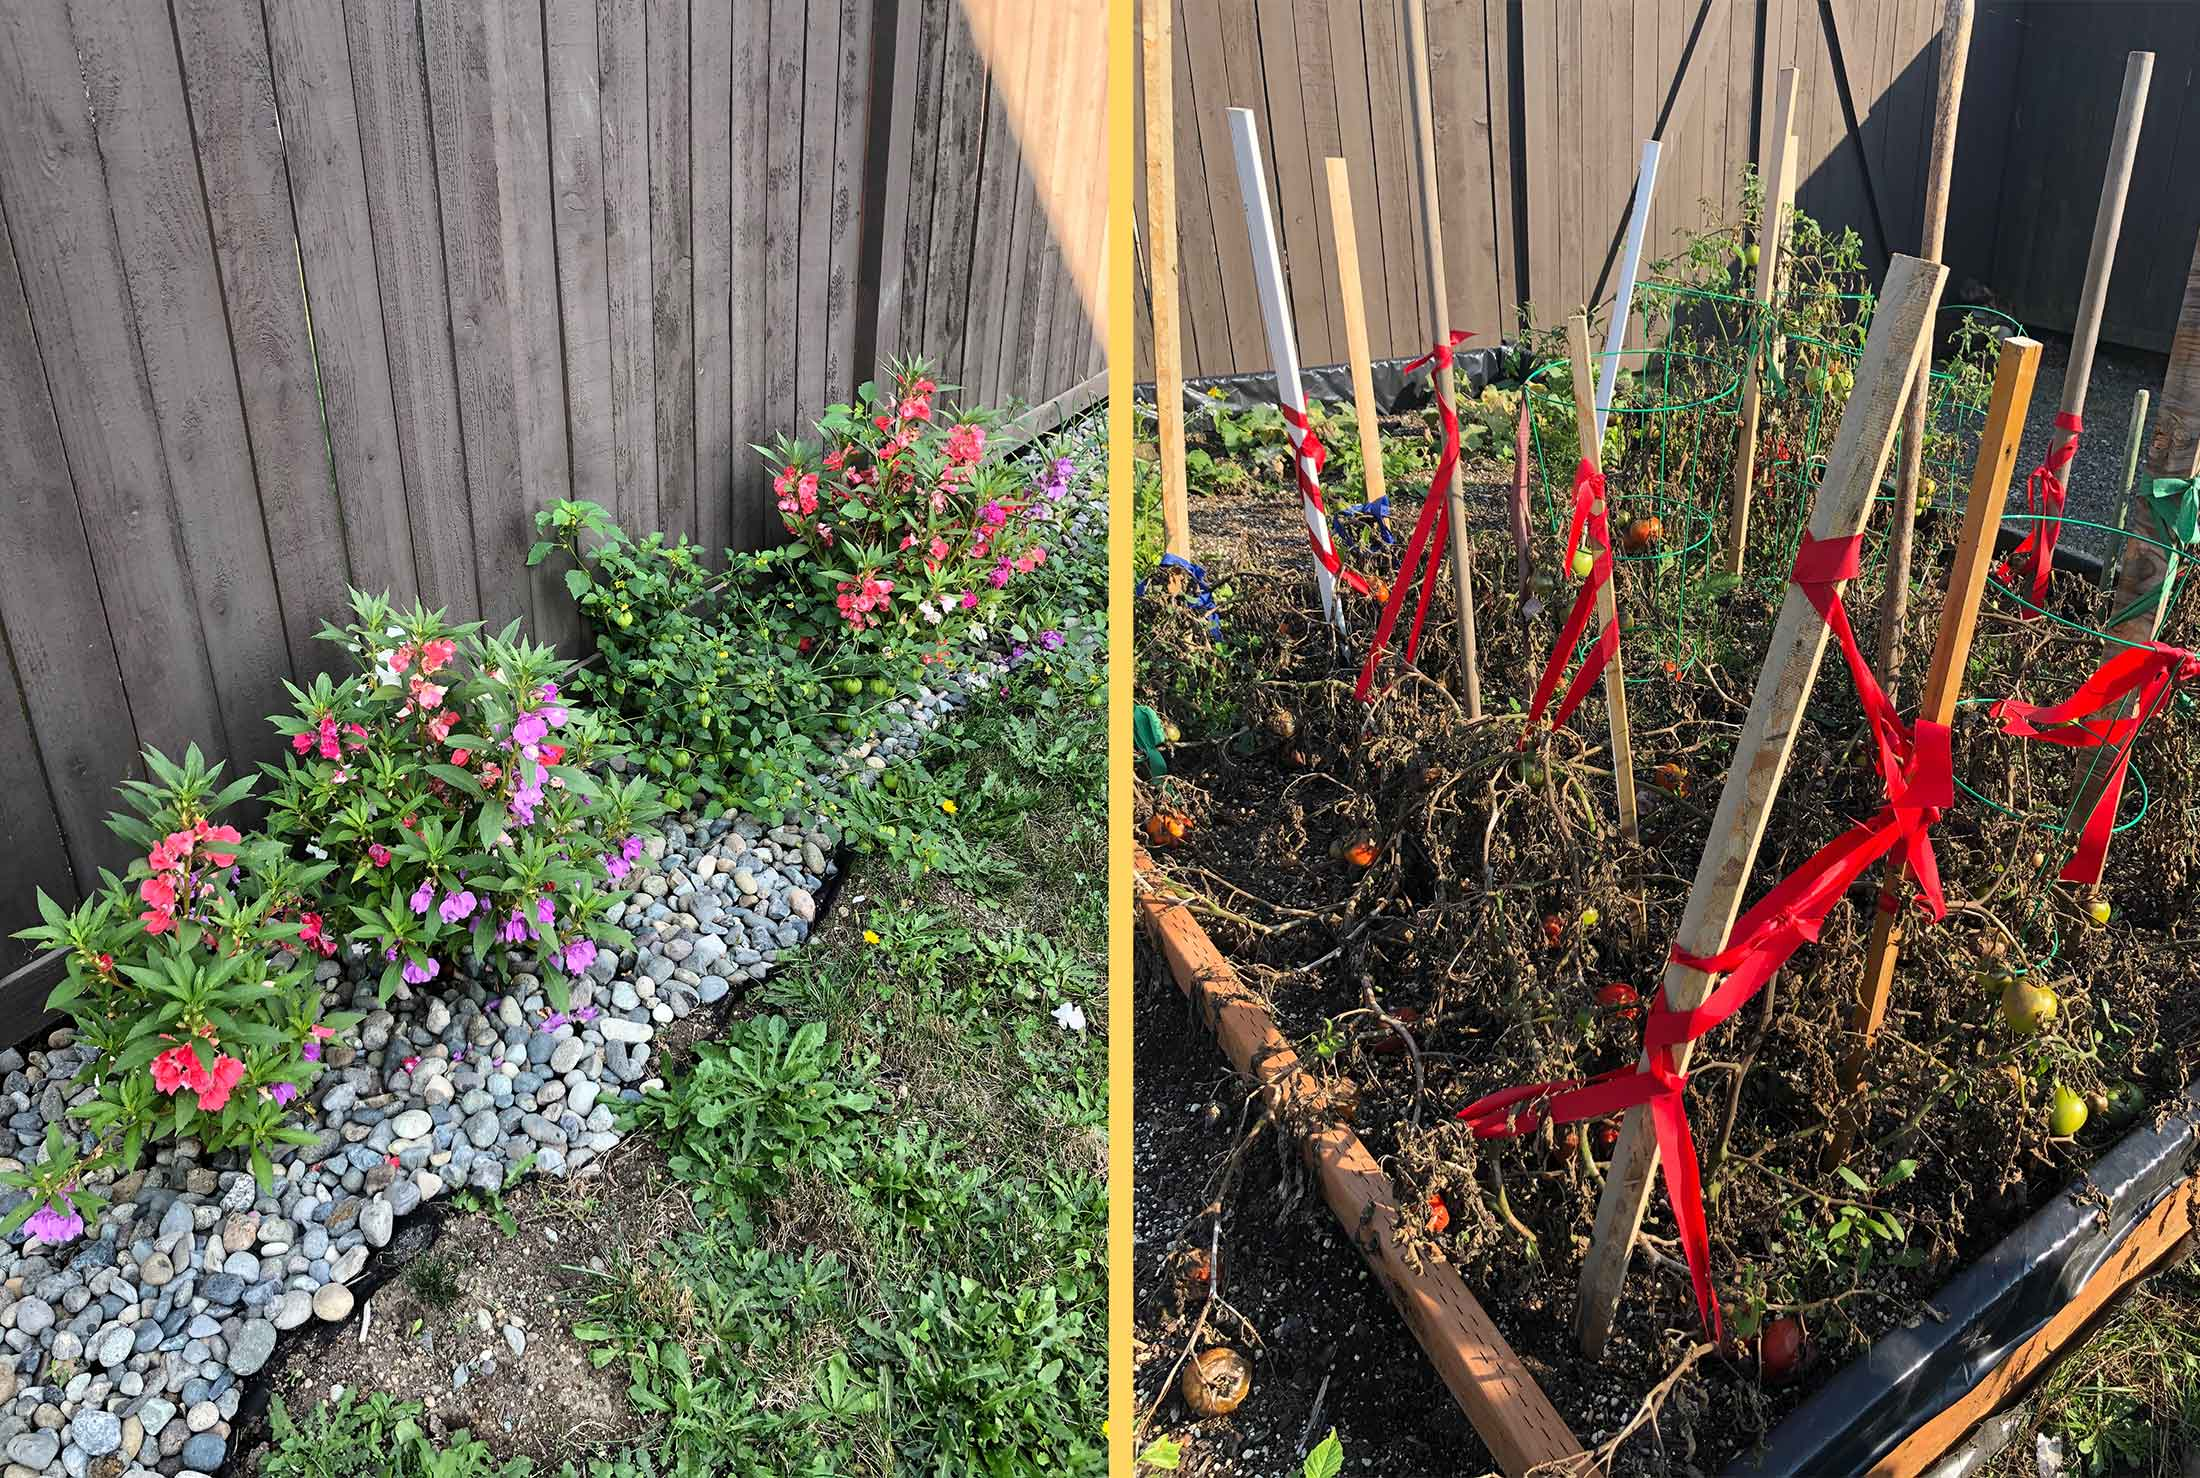 Irma's plants. Notice the selvedge from work used as ties on stakes!